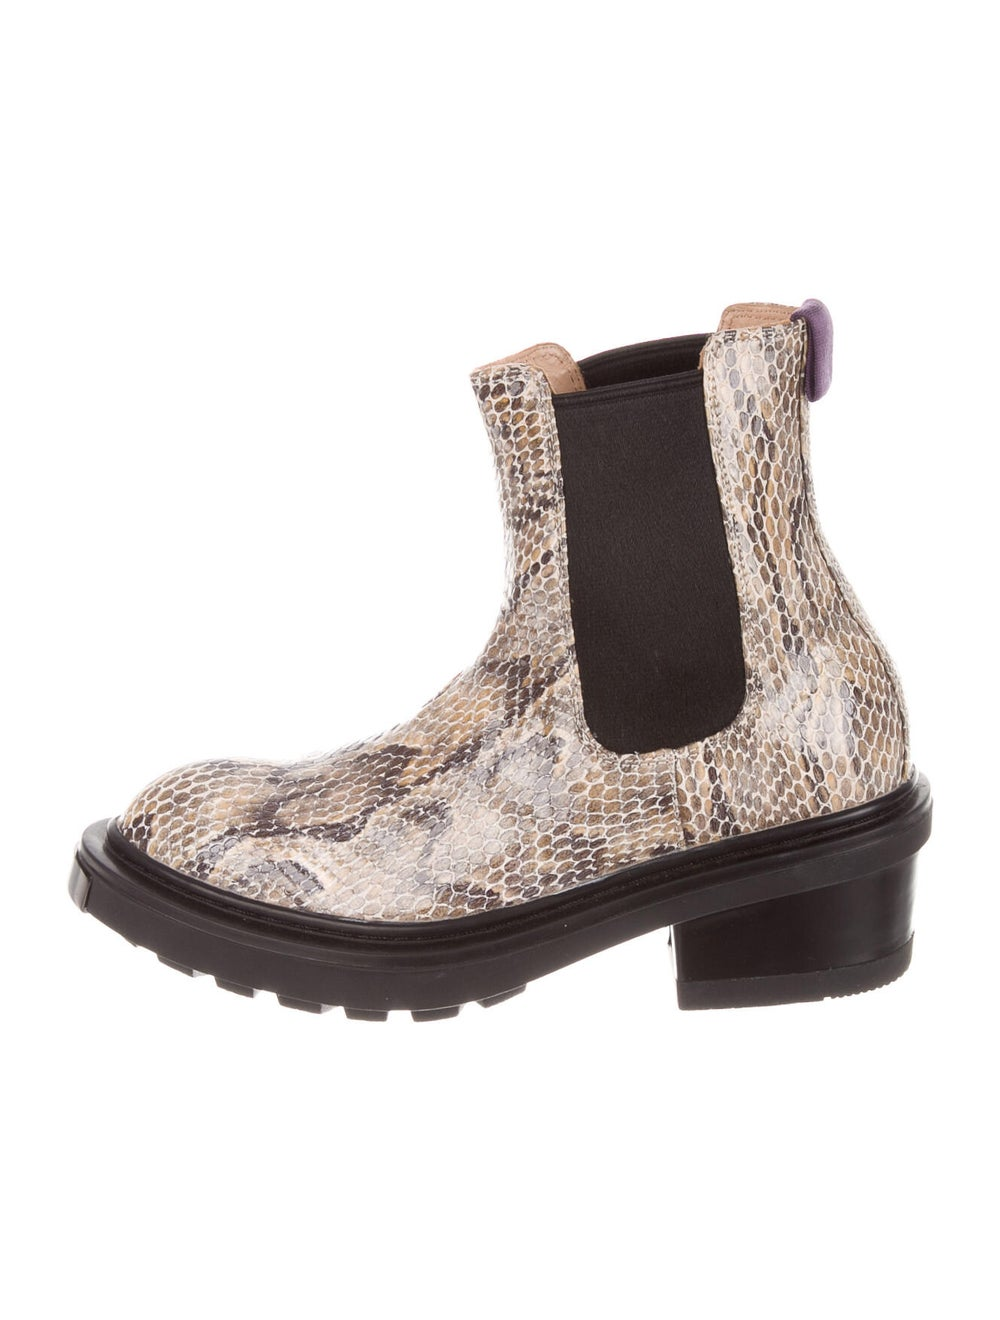 Eytys Embossed Leather Chelsea Boots - image 1